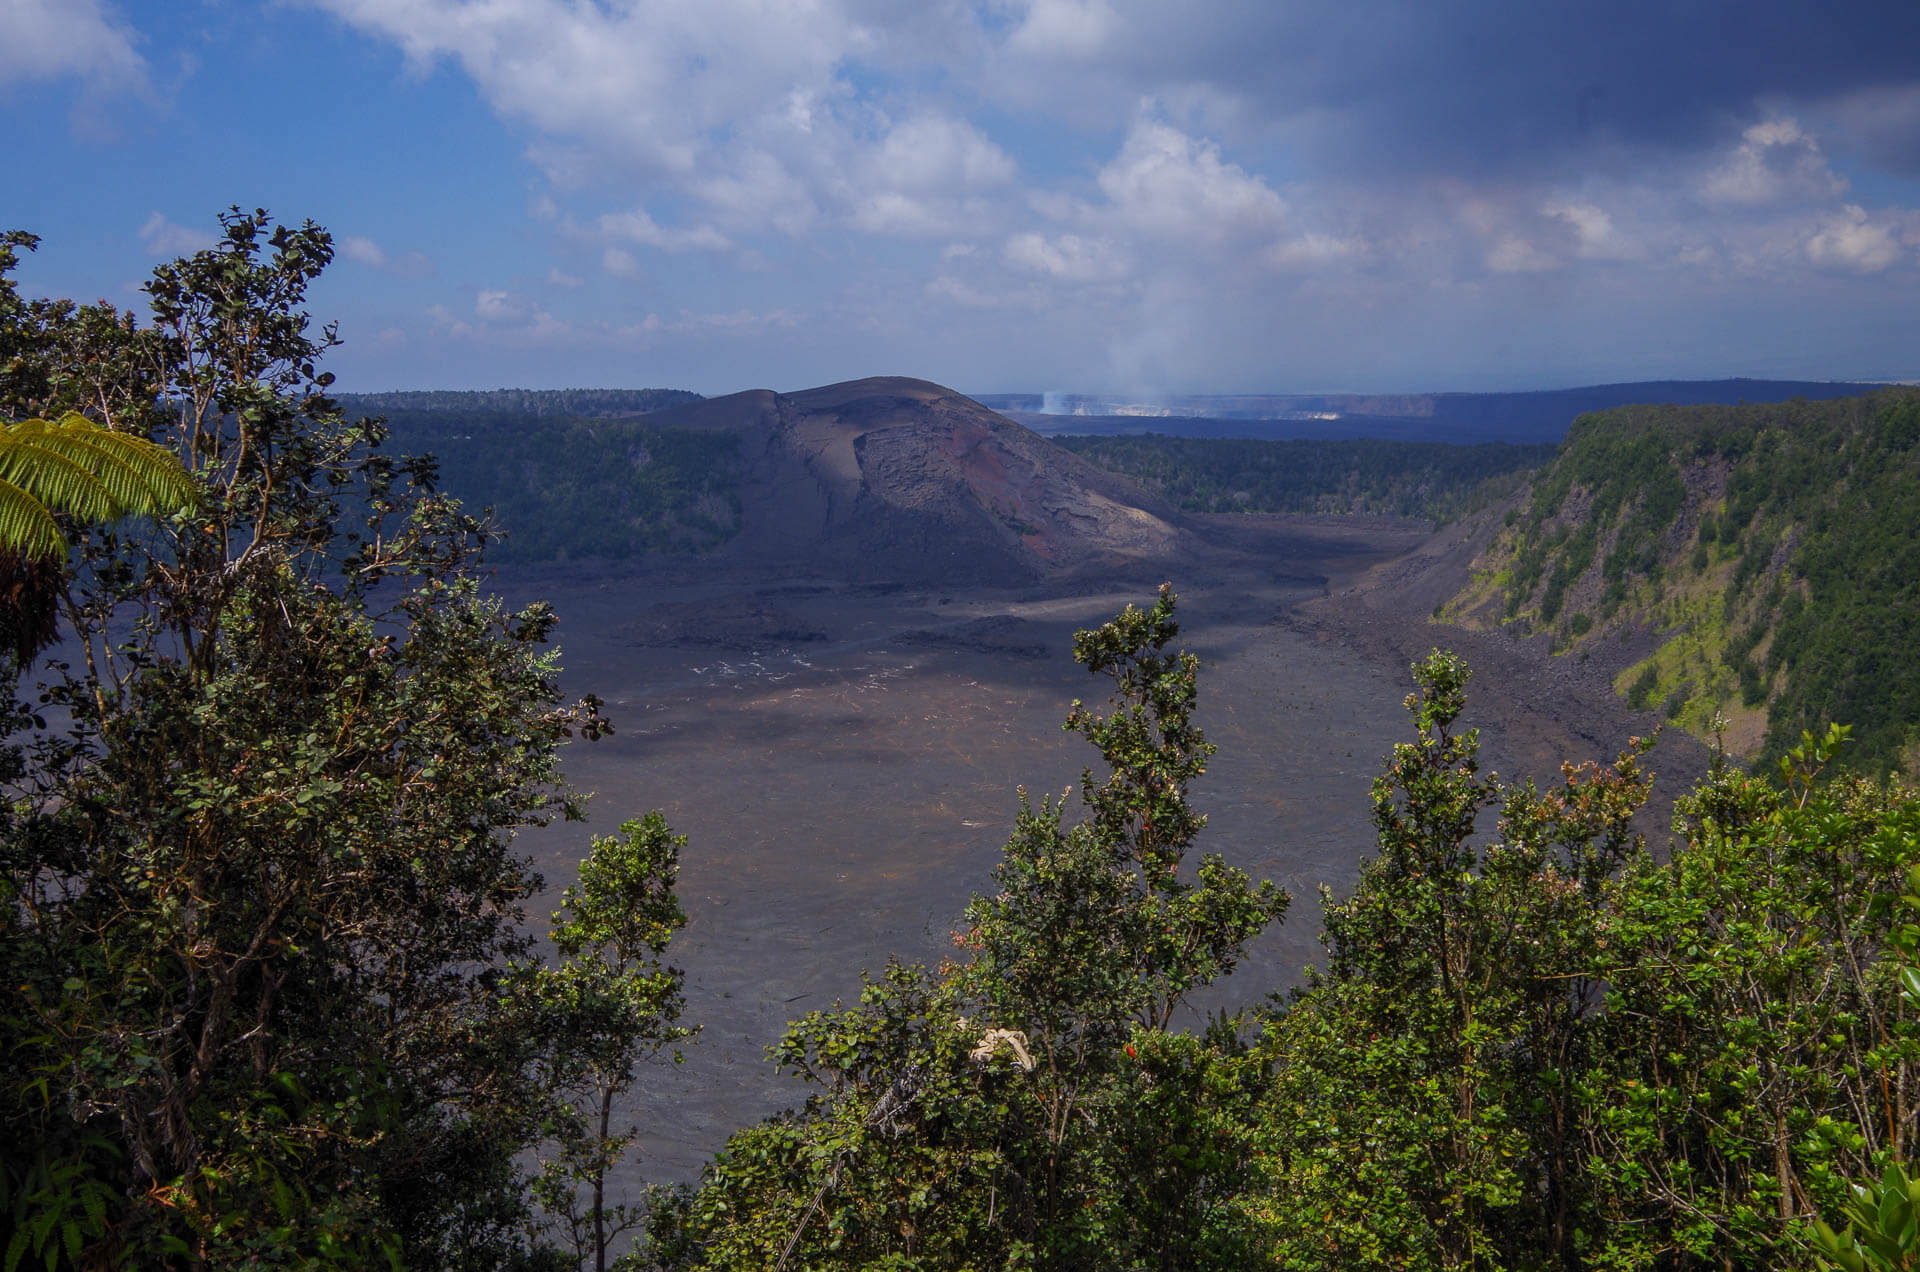 view into the crater from the rim